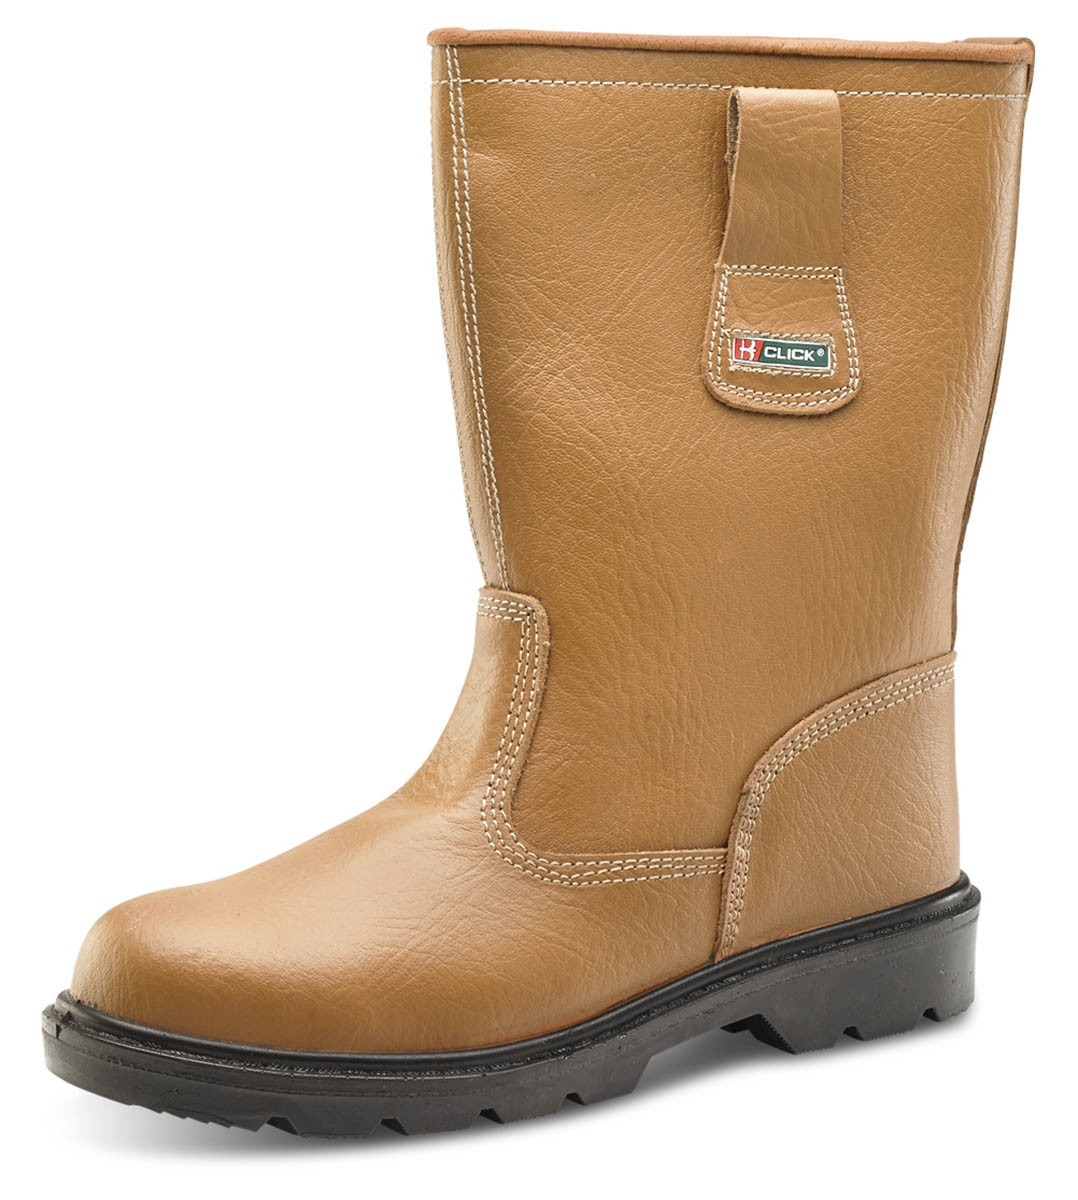 Work right and safe with rigger boots